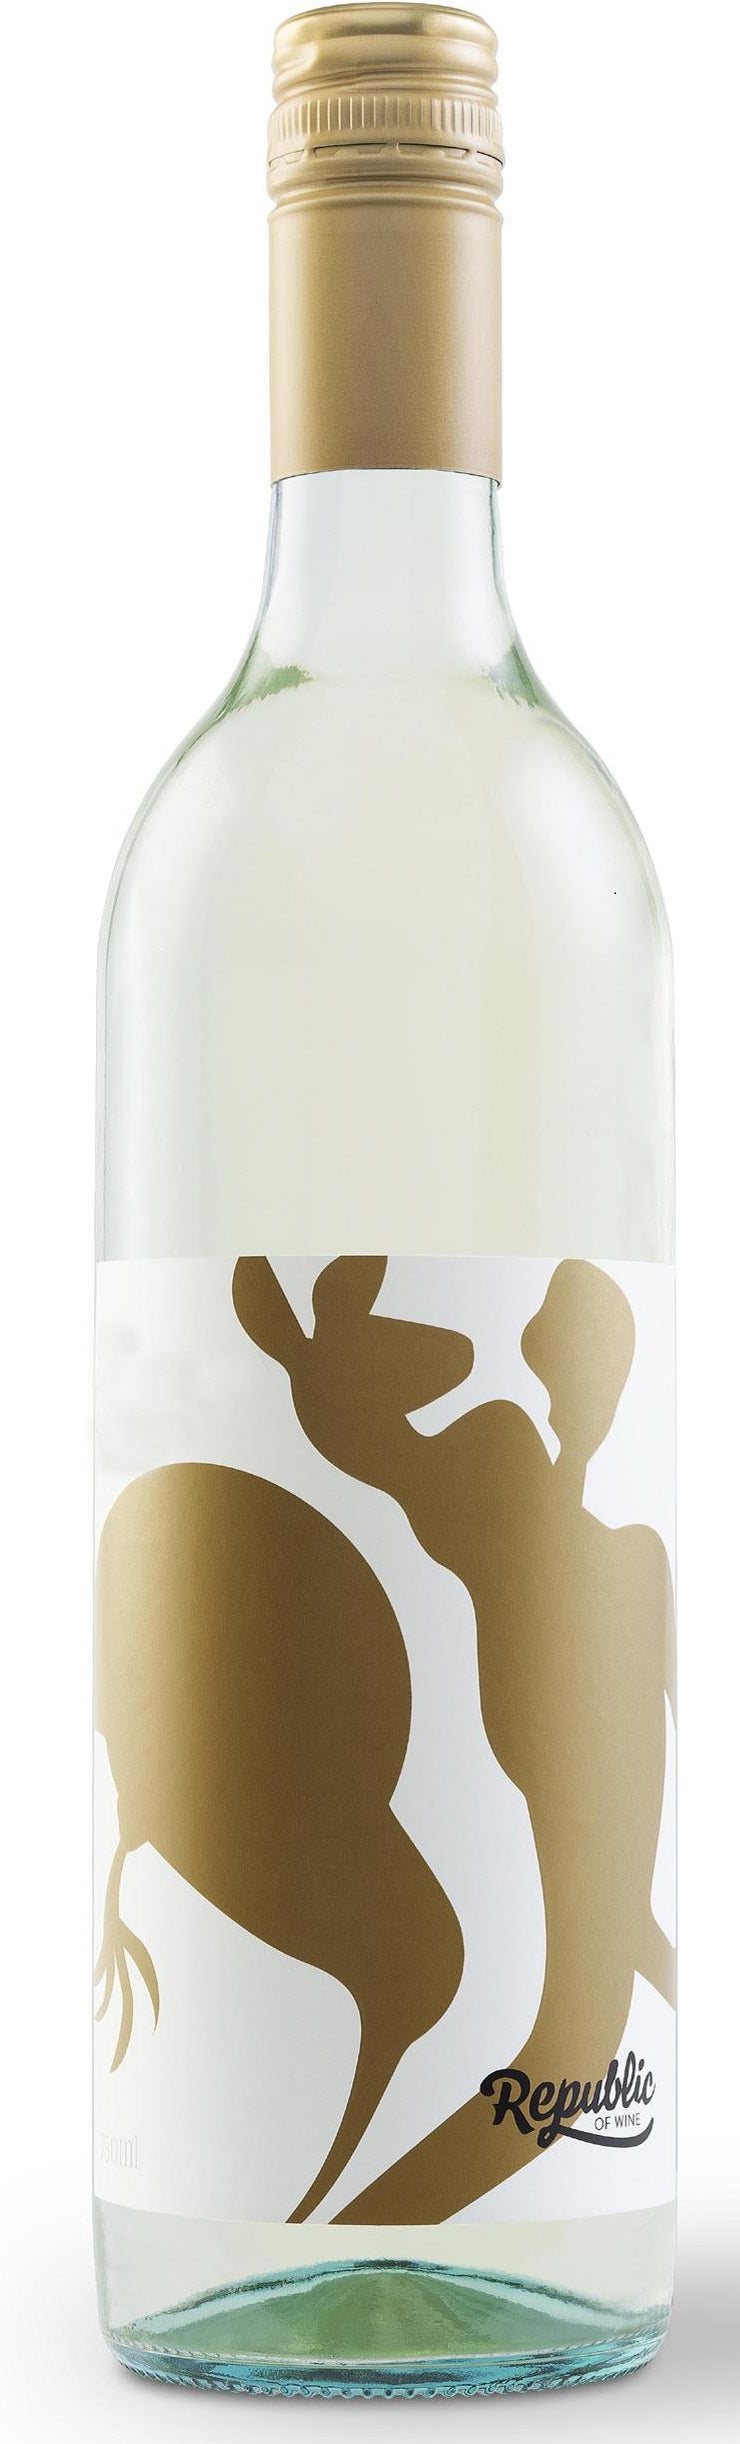 Republic of Wine Sauvignon Blanc 2017 / 2019